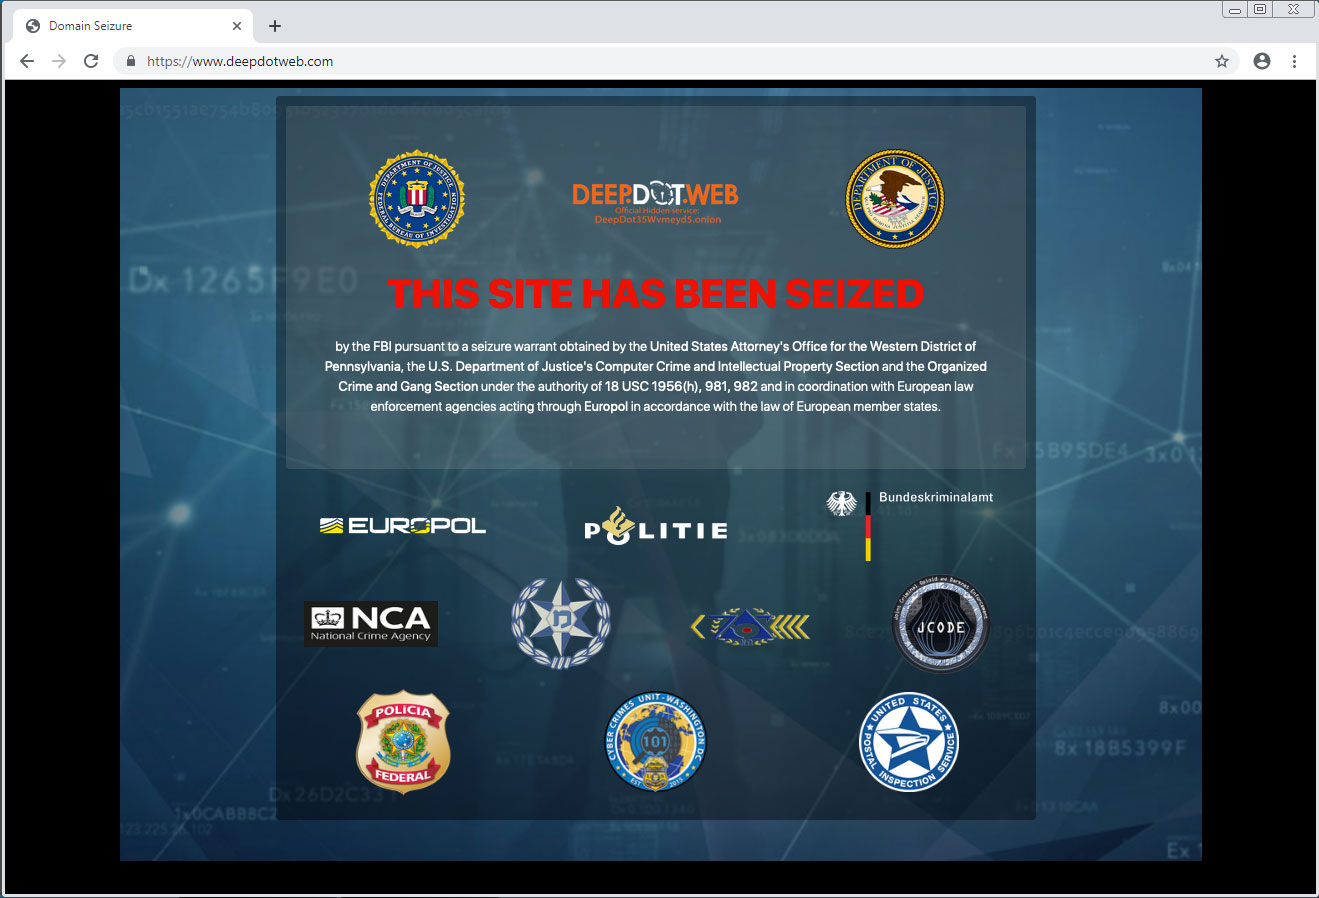 DeepDotWeb Seized by FBI